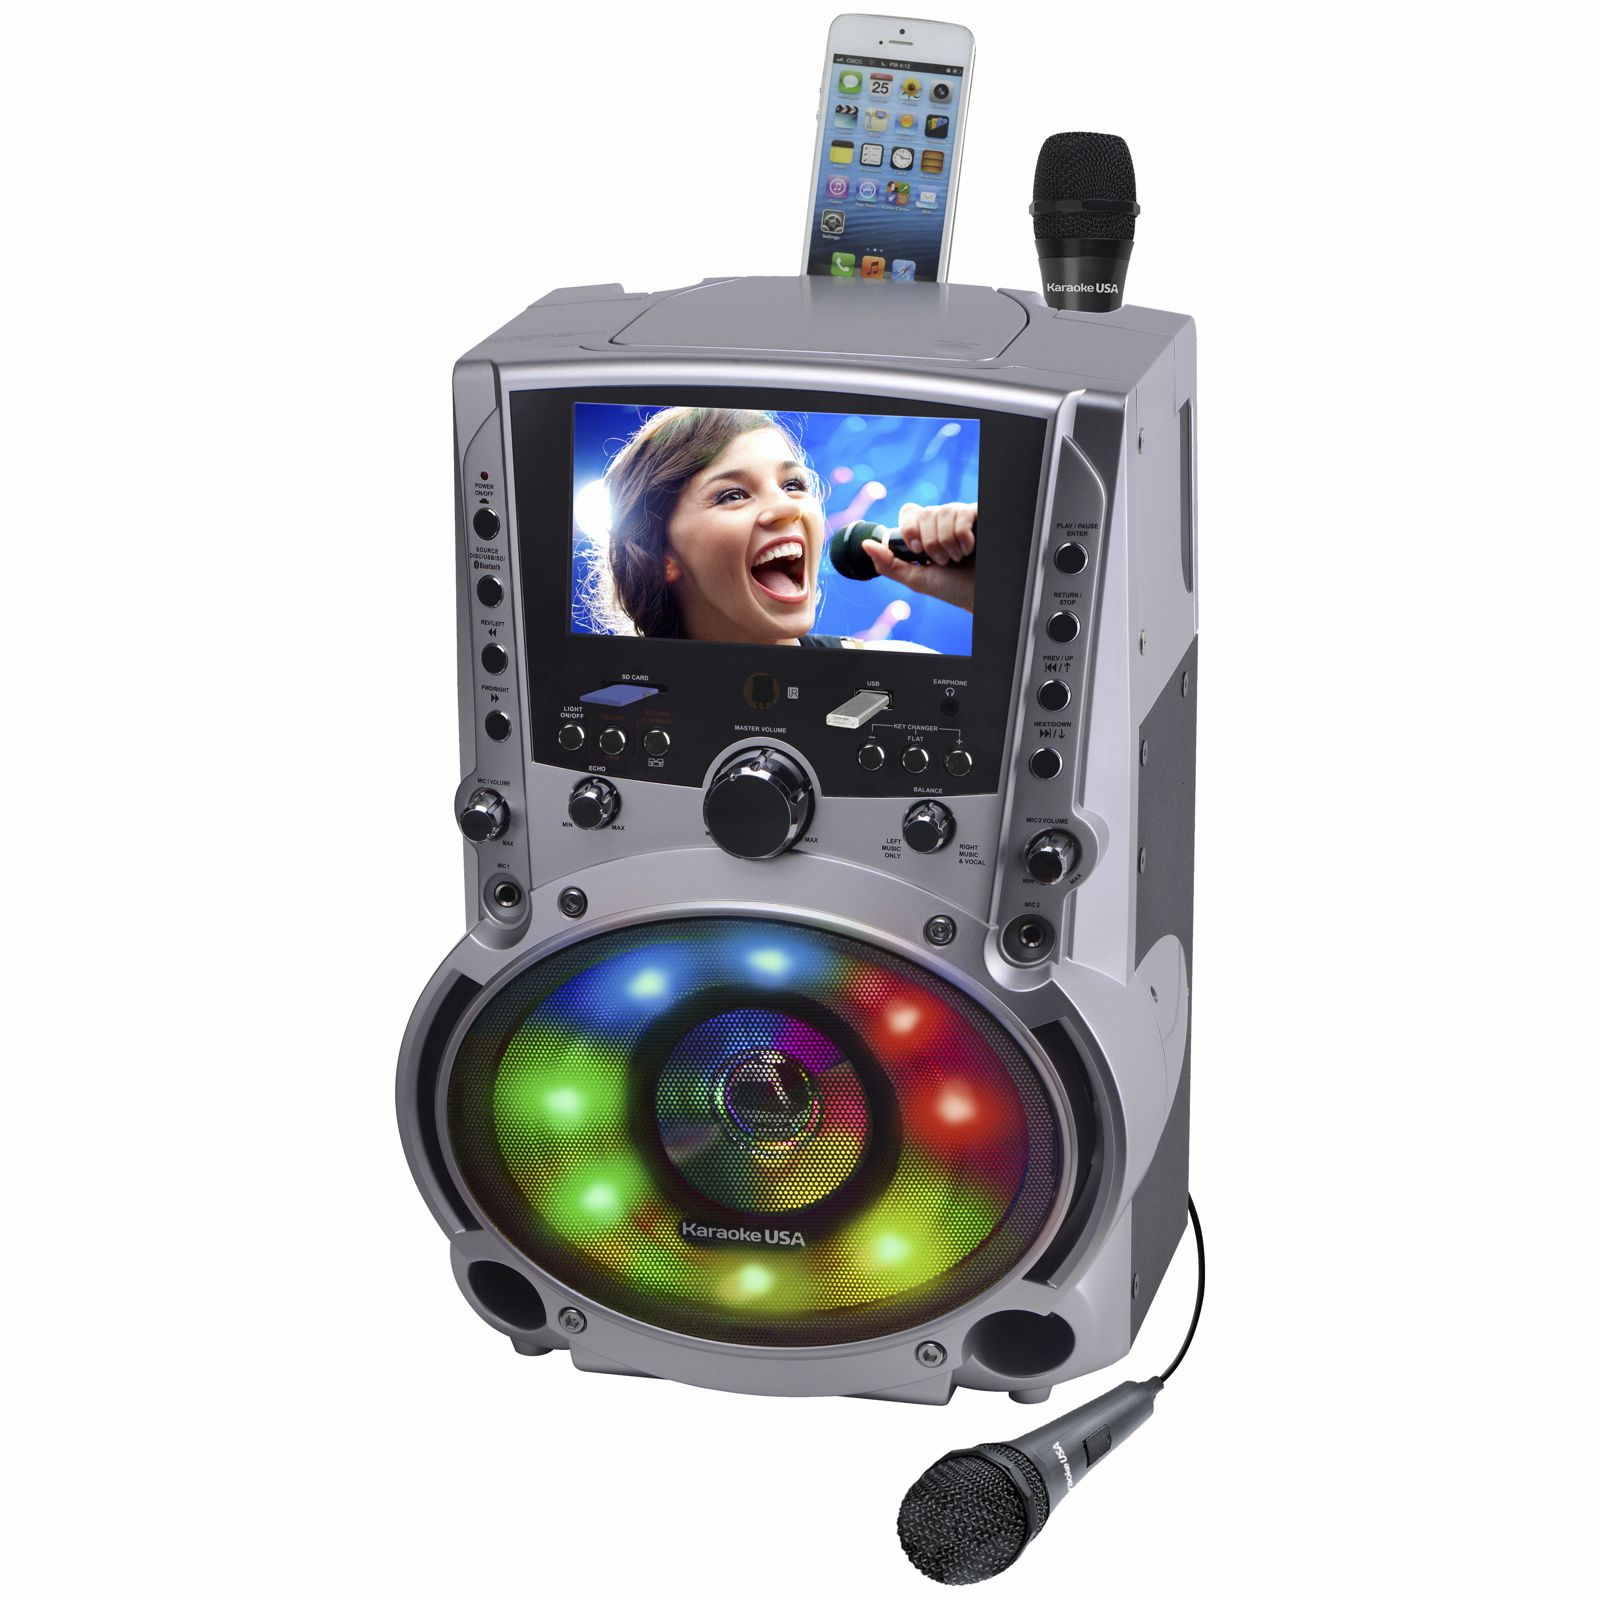 GF758 - DVD/CDG/MP3G Karaoke Machine with 7